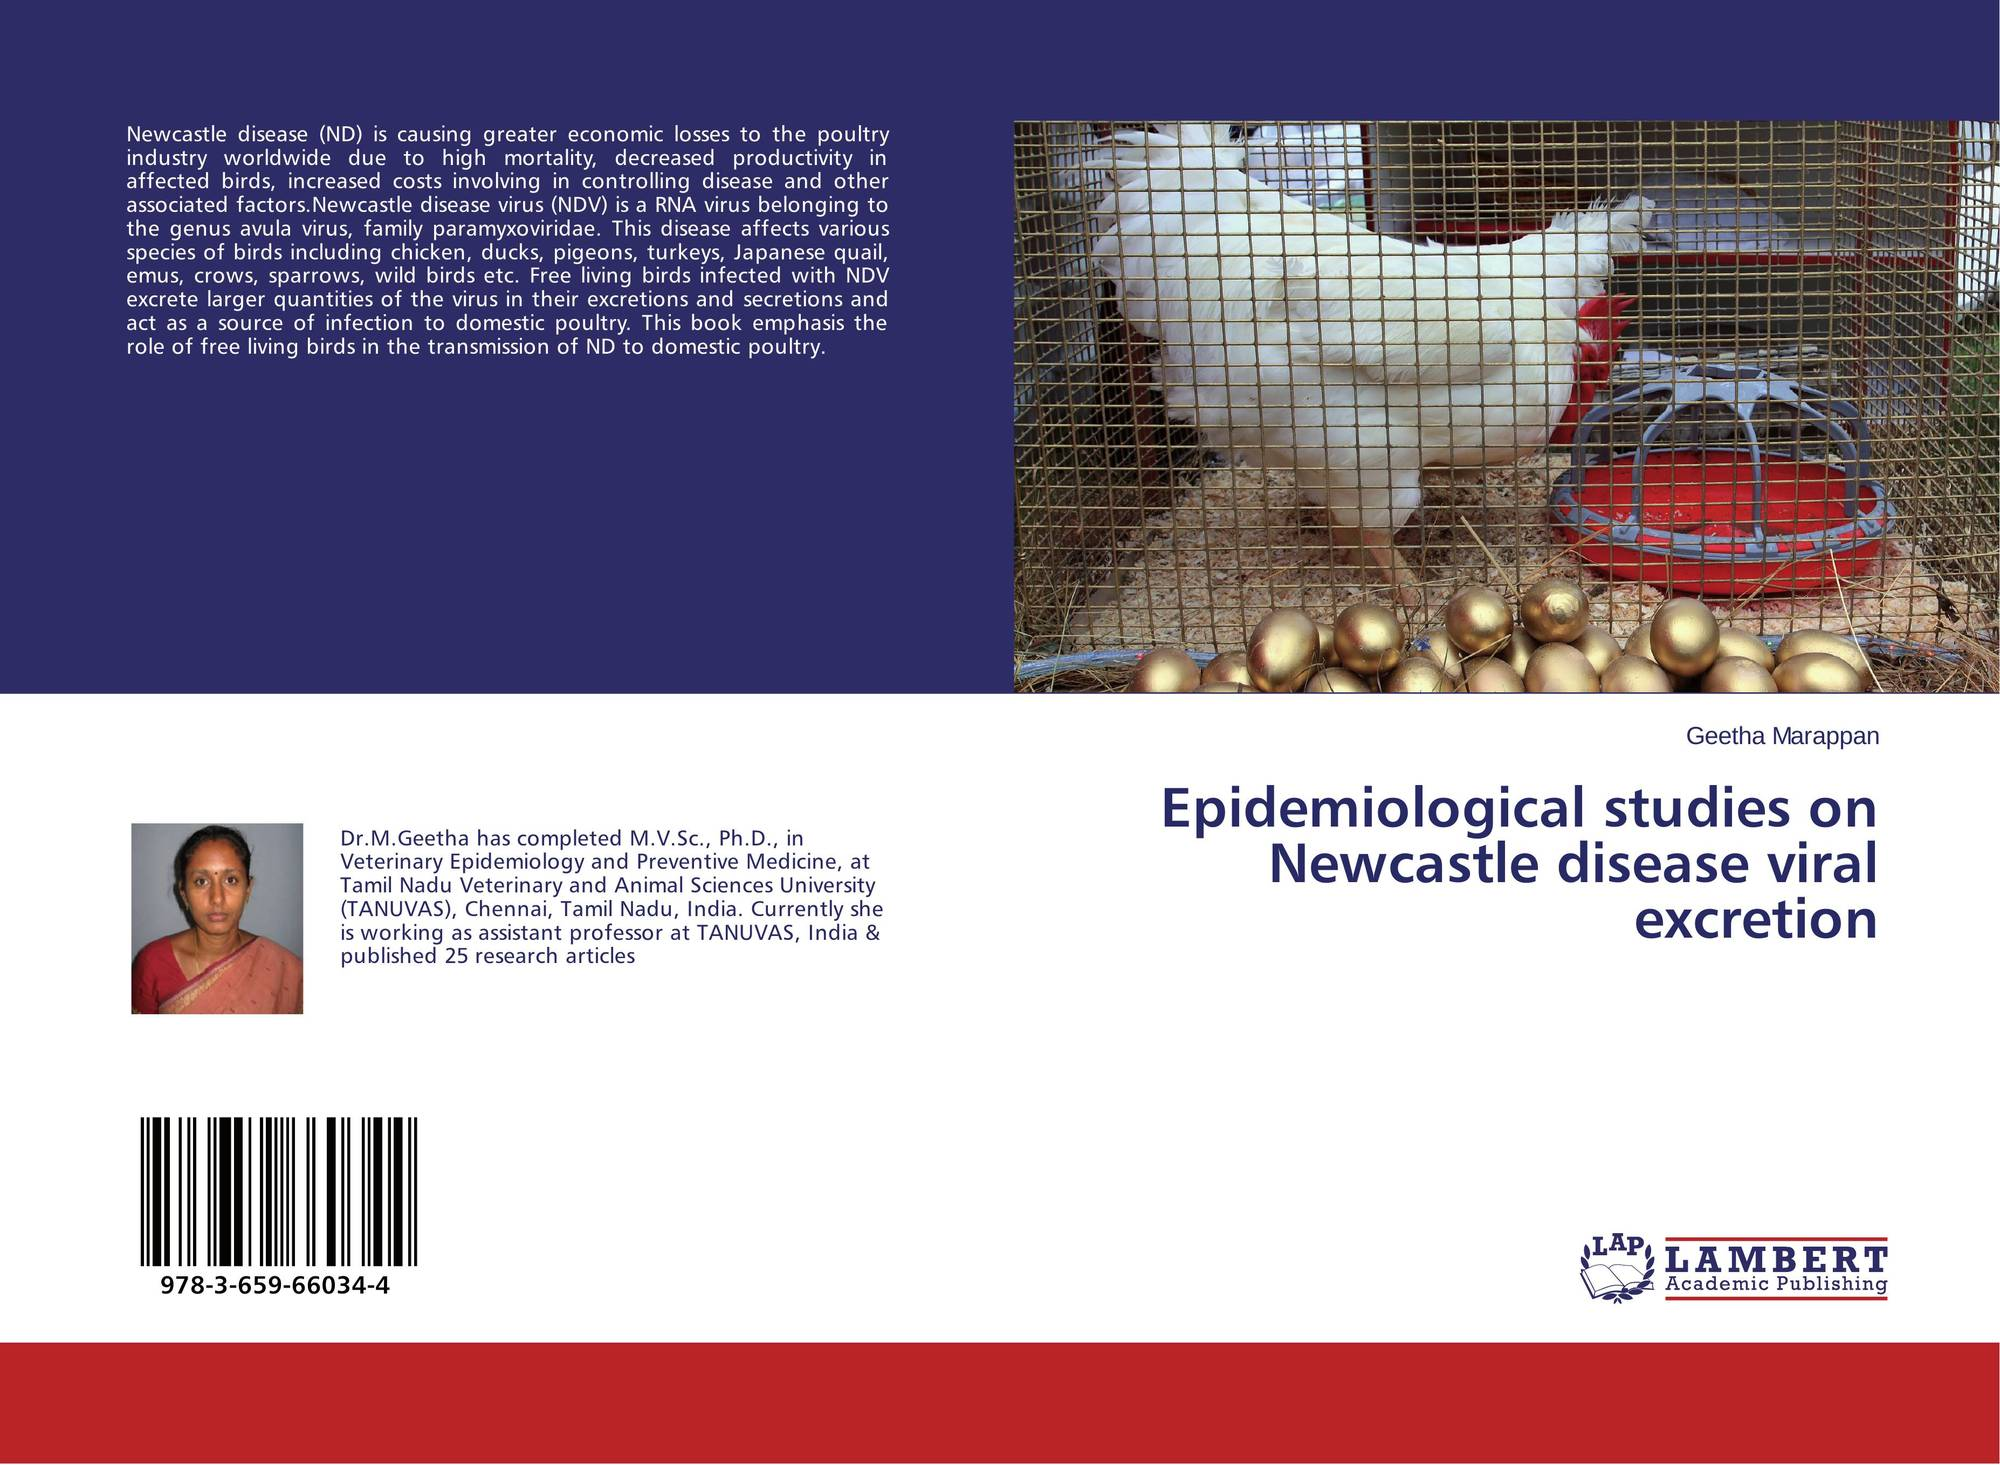 Epidemiological studies on Newcastle disease viral excretion